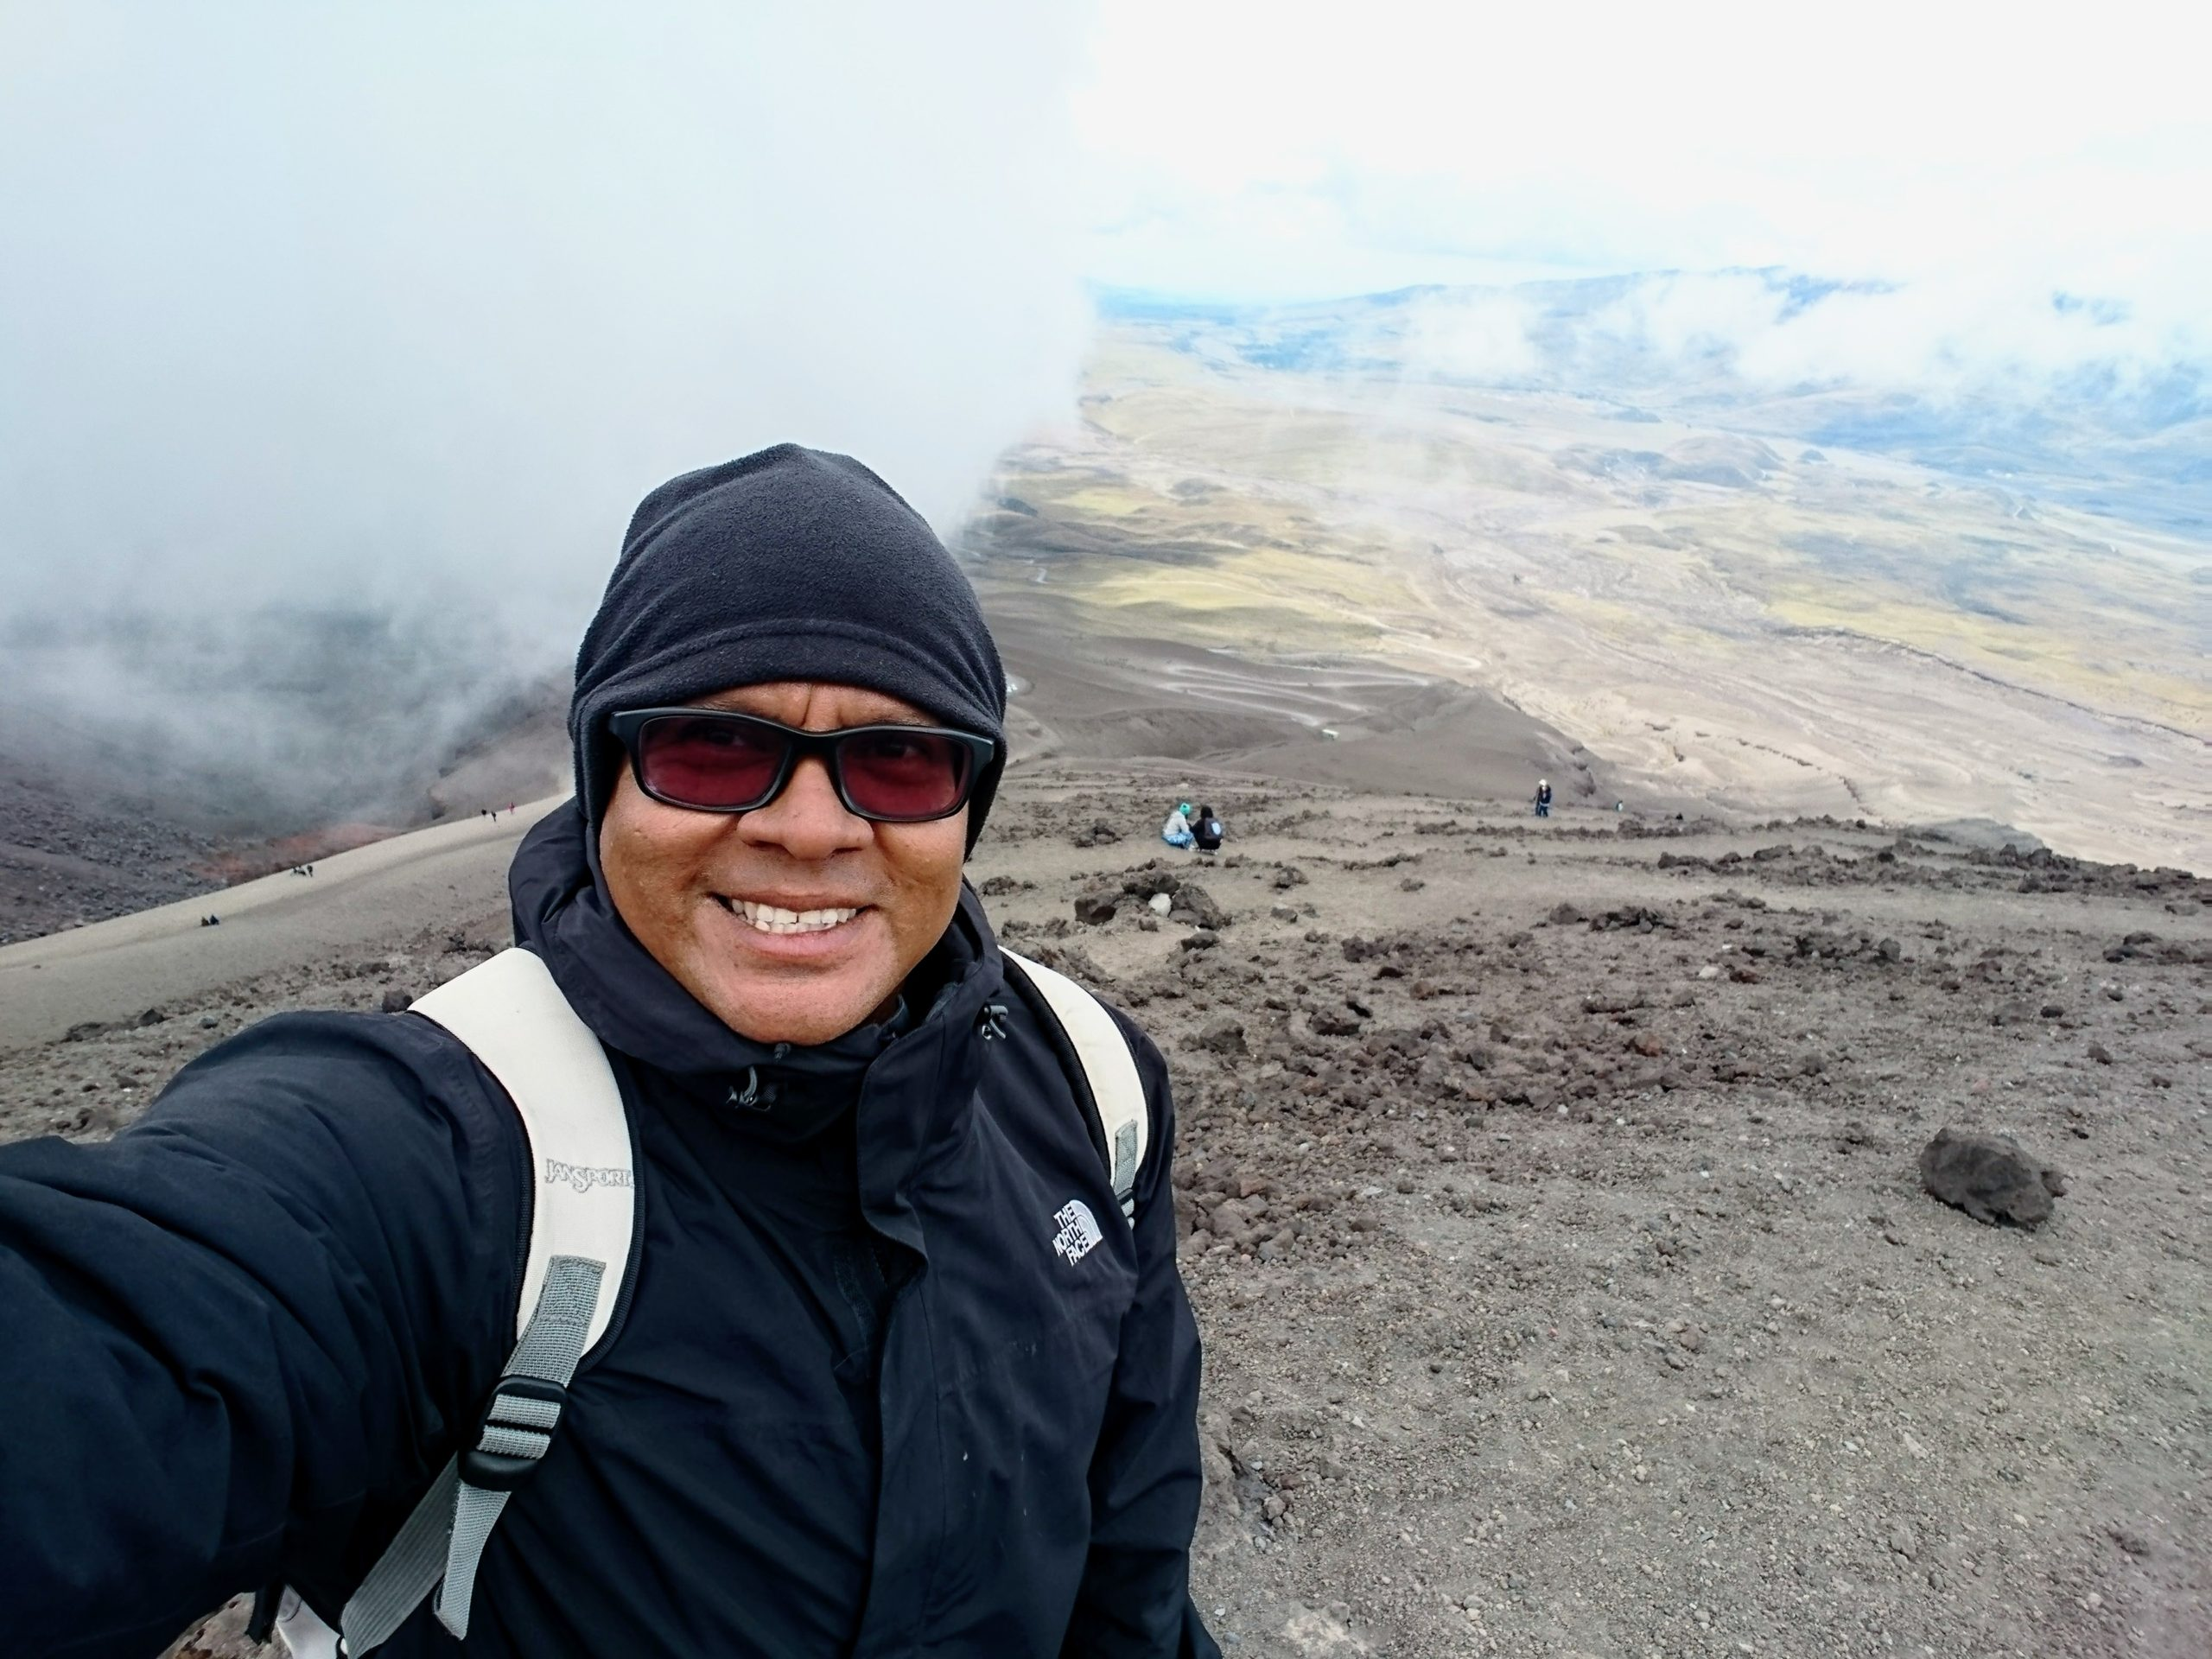 Cotopaxi Volcano… 5897 steps closer to the moon.